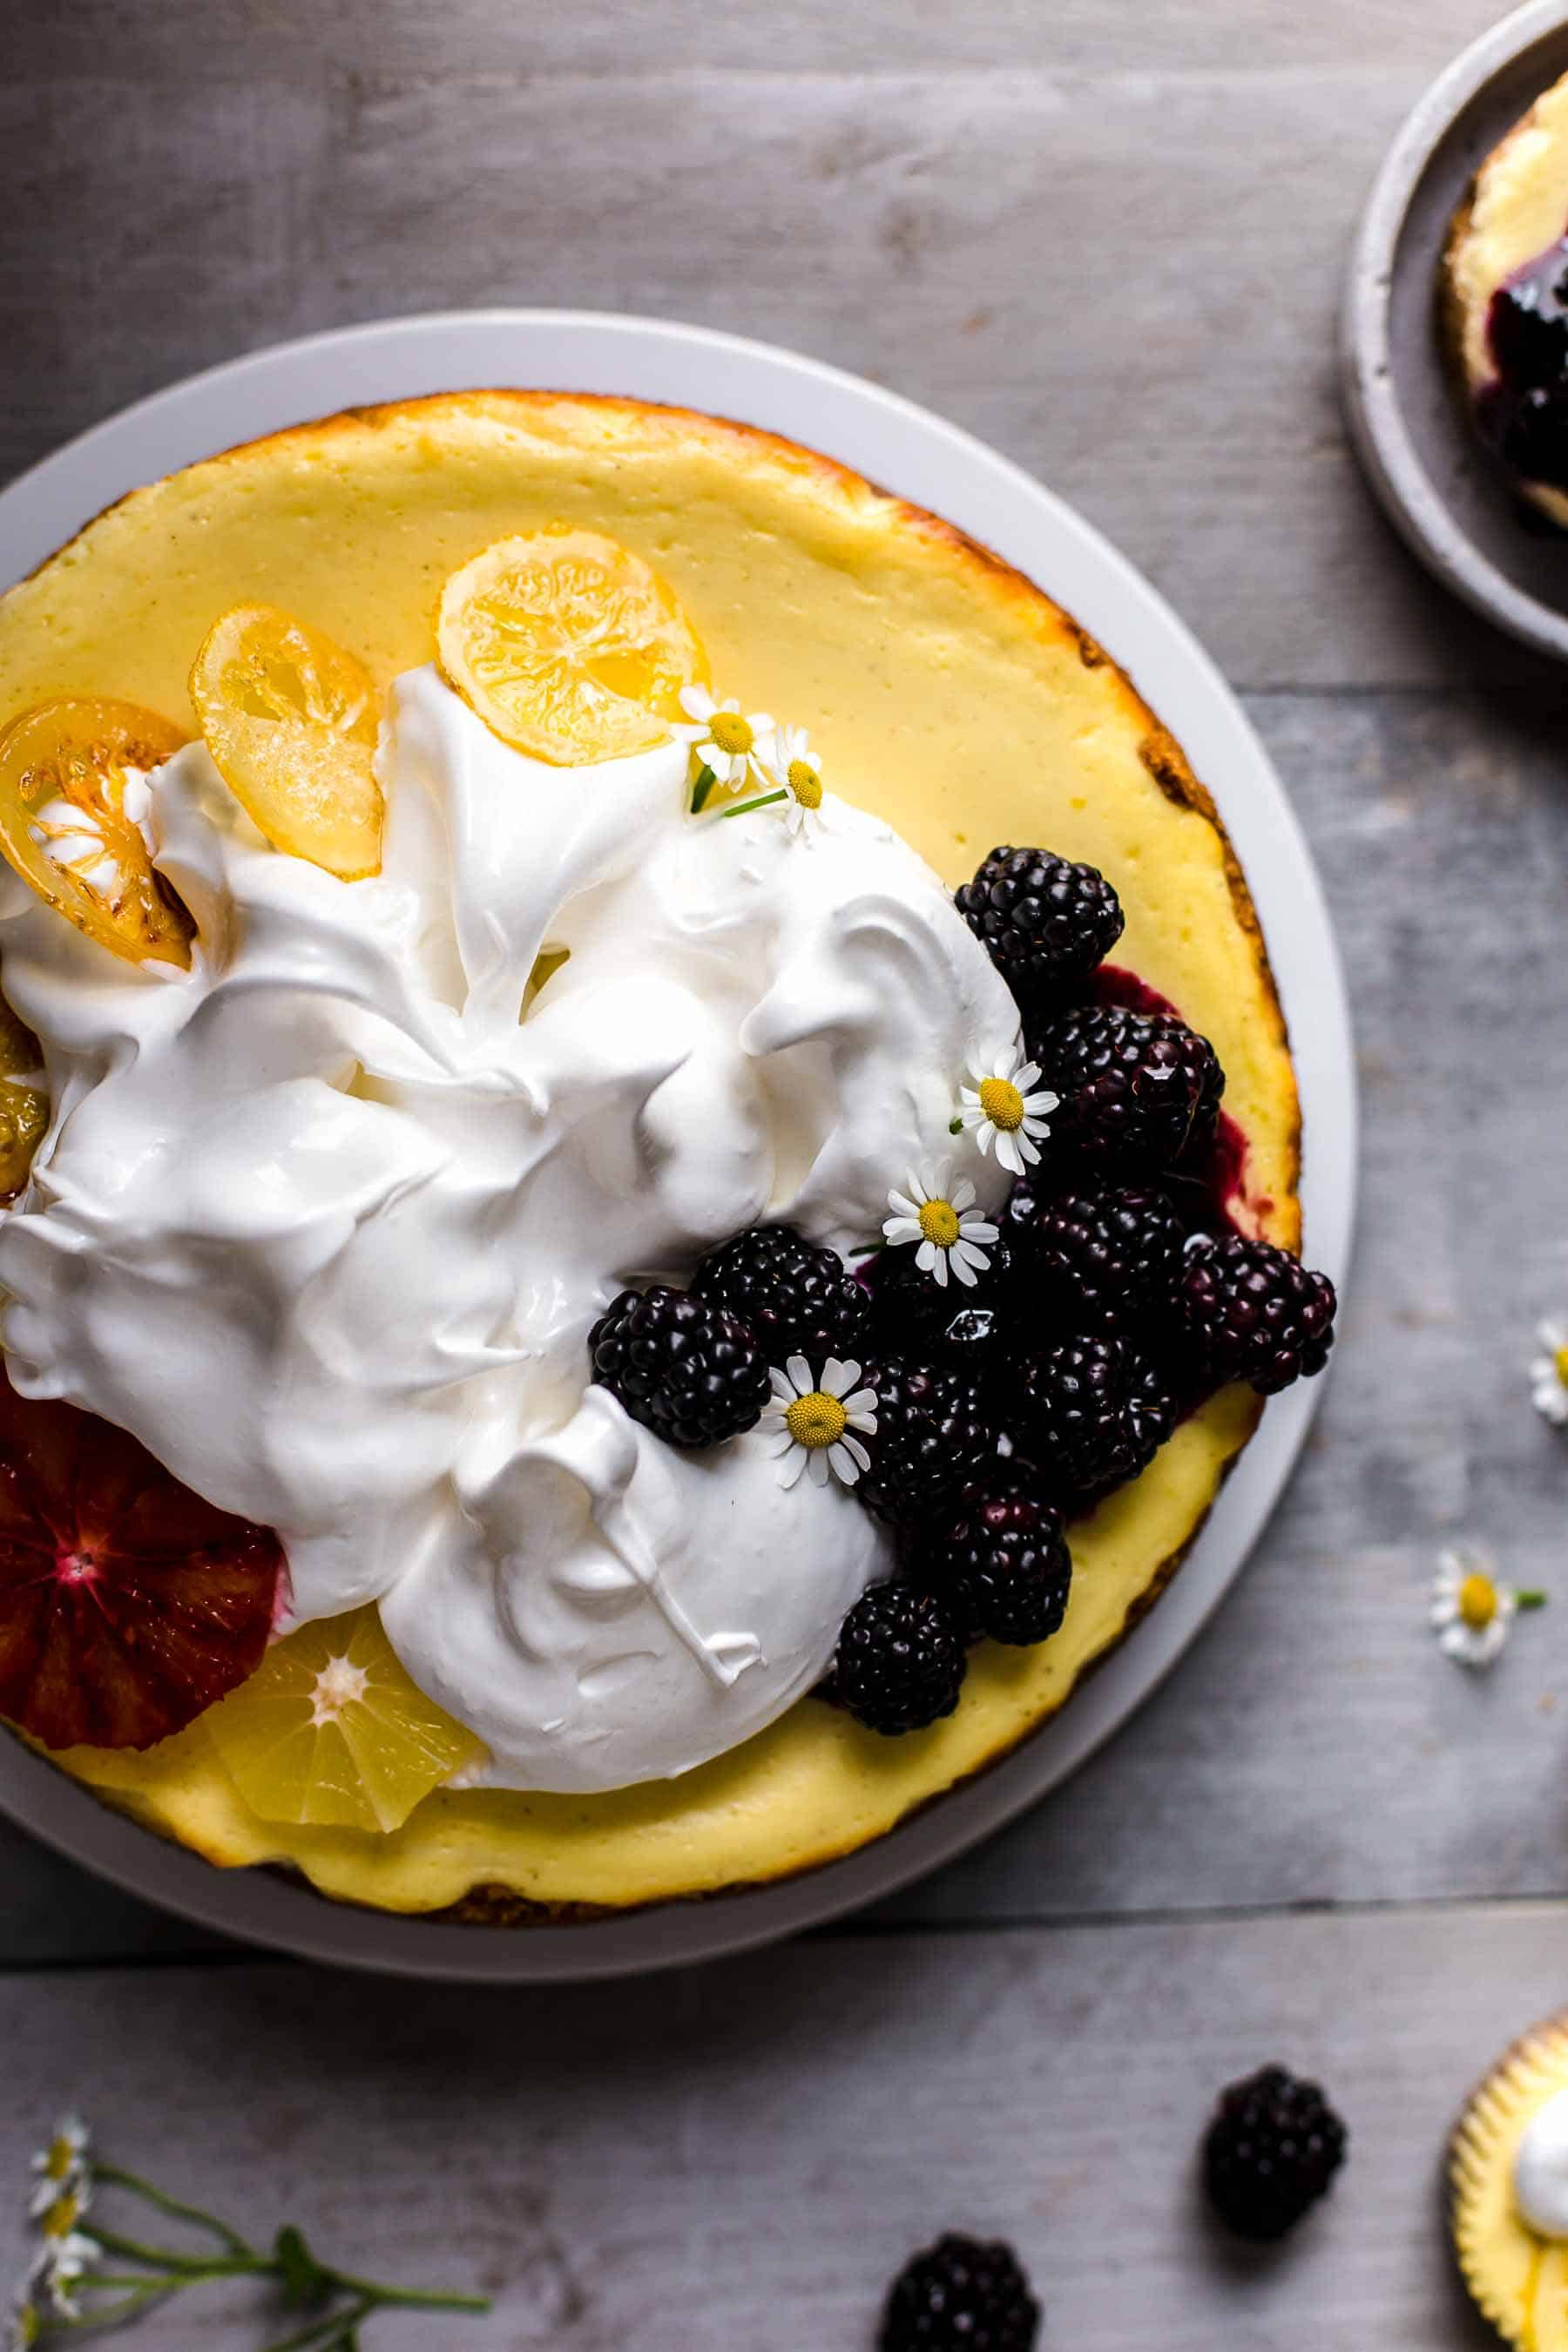 How to decorate Lemon Cheesecake